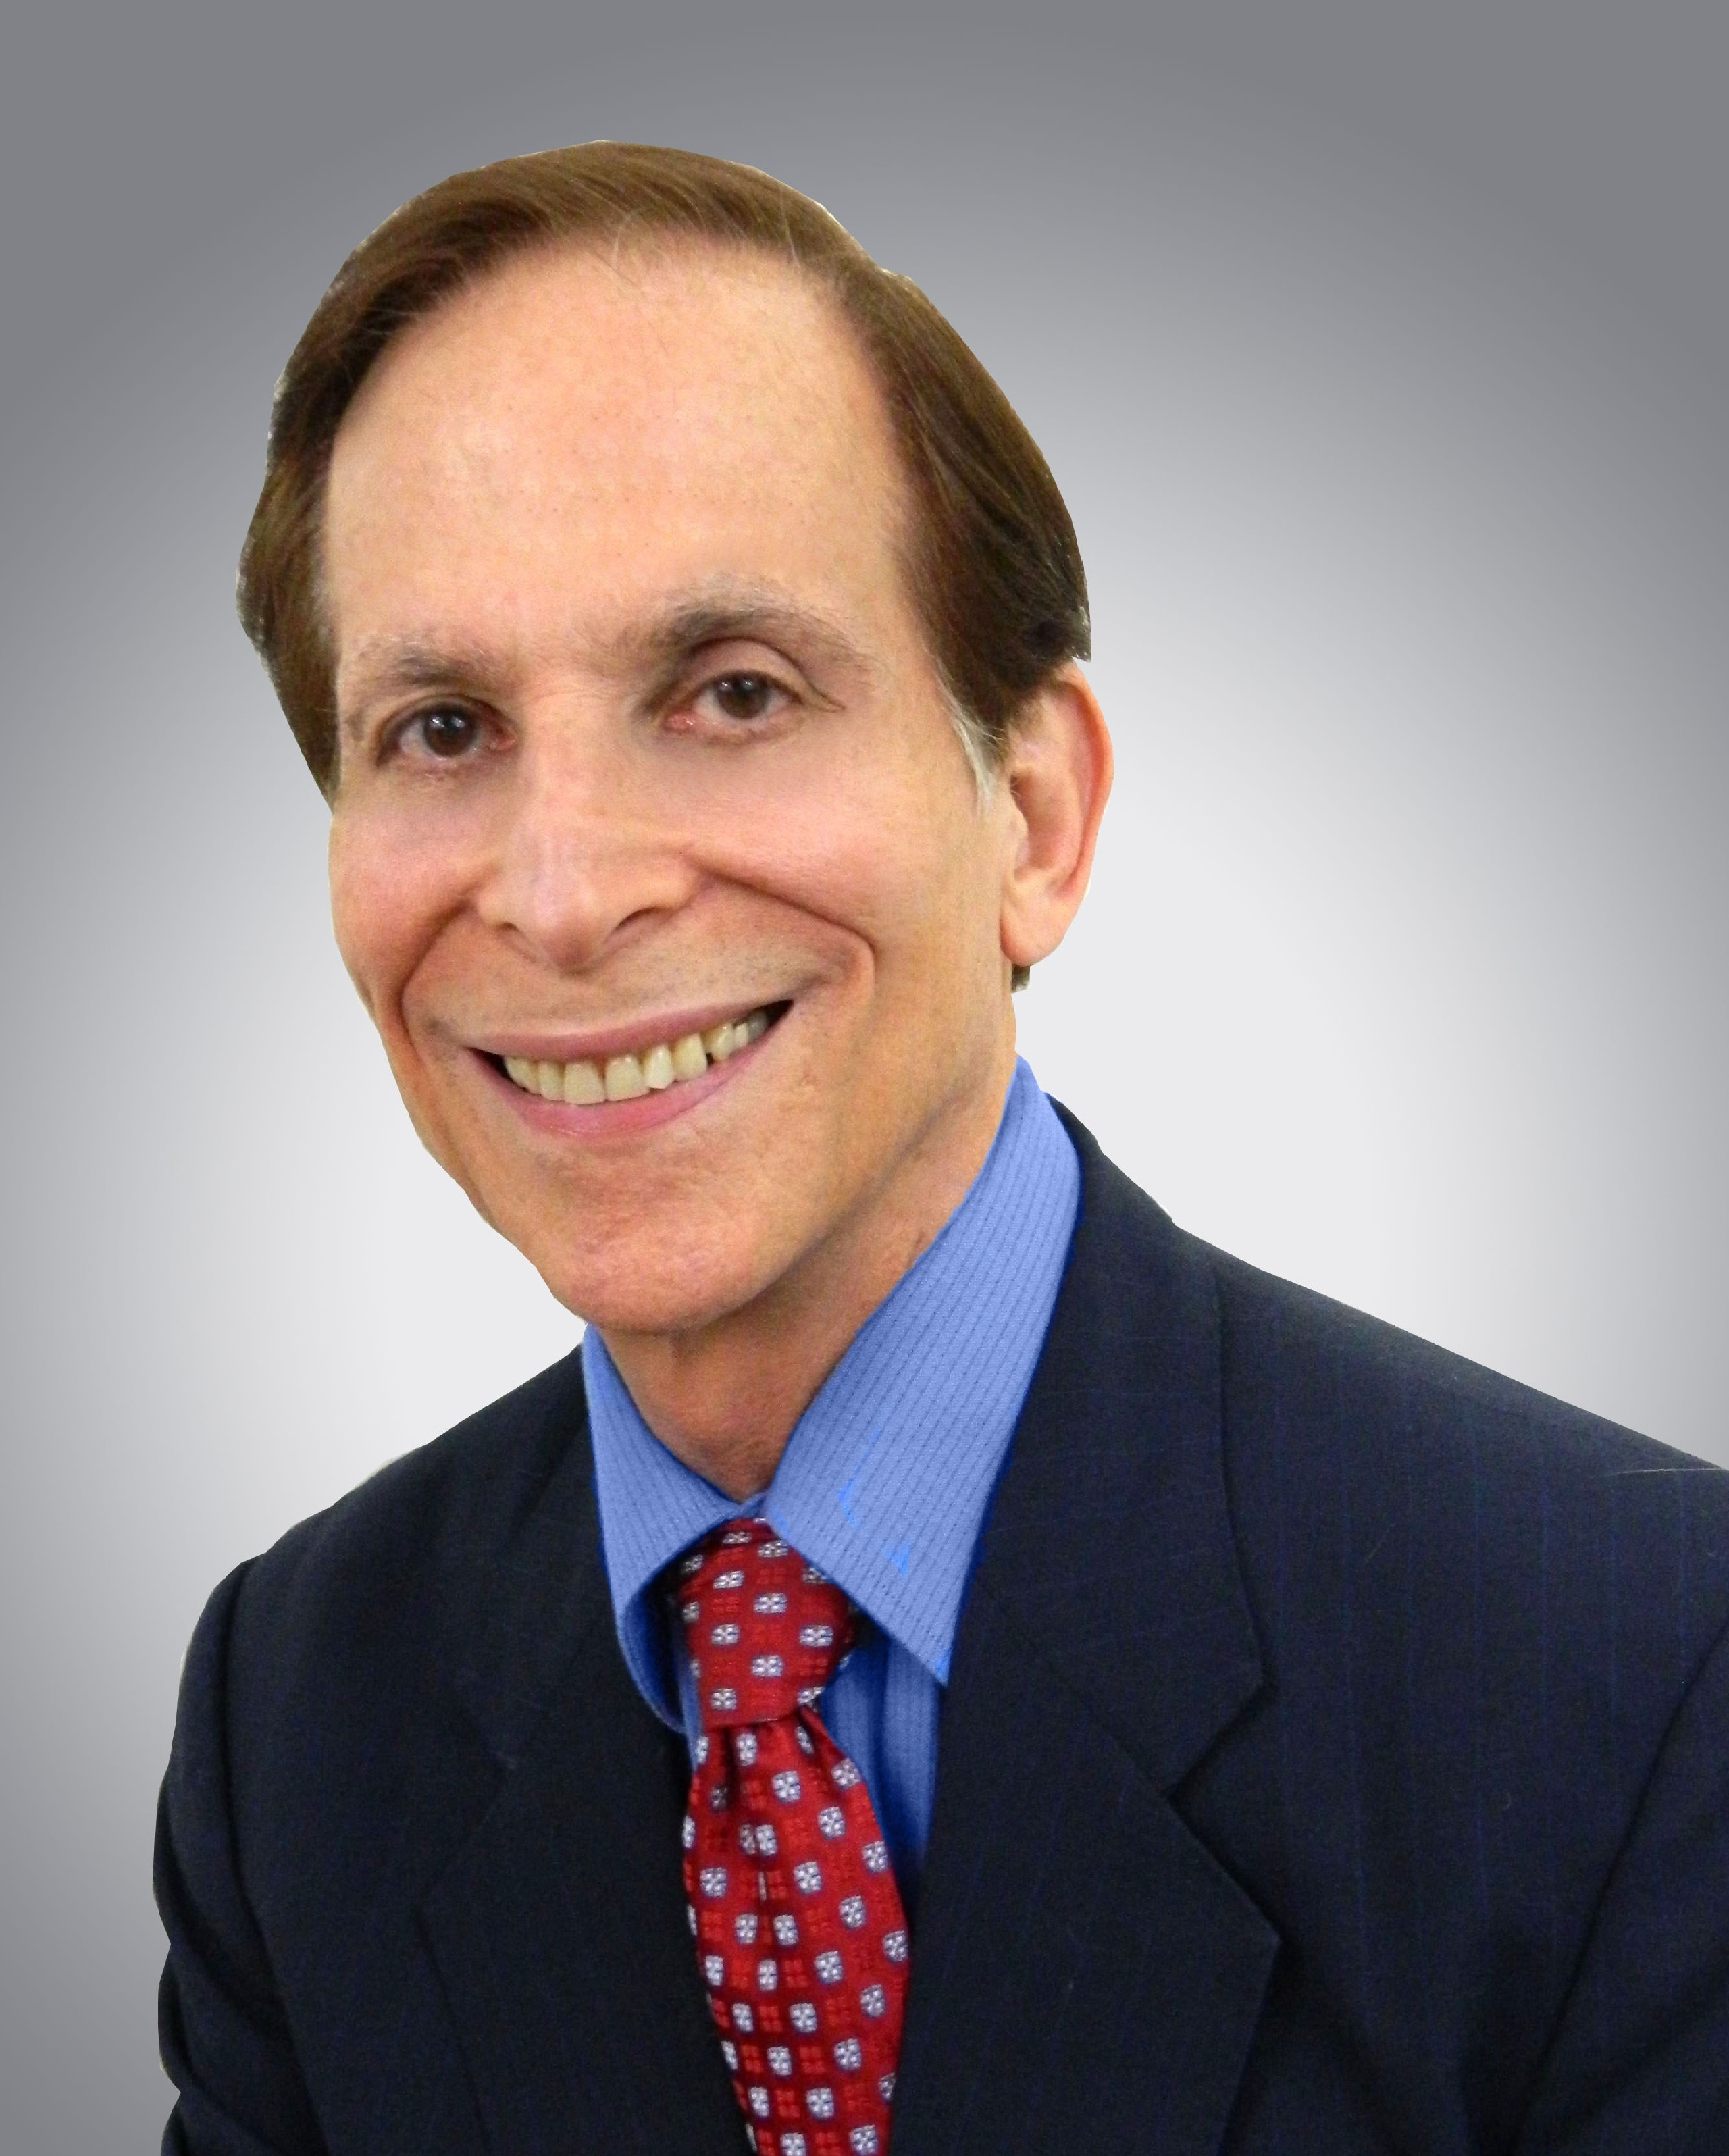 Financial Industry Speaker - Dr. Jerry Teplitz